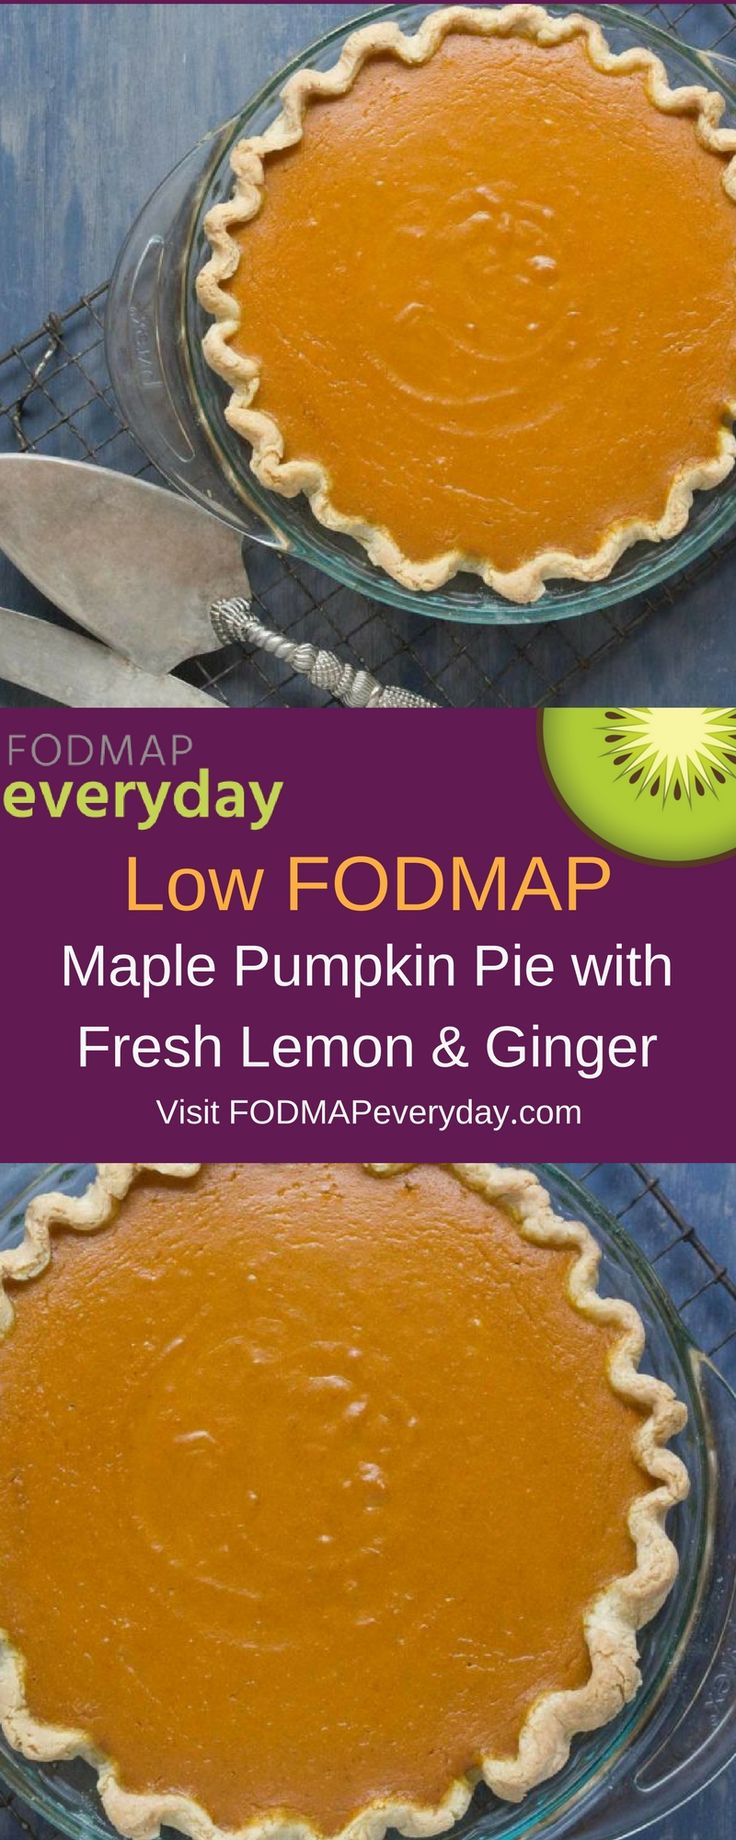 This version of pumpkin pie is lightly sweetened with maple syrup and flavored with fresh lemon zest and freshly grated ginger, which provide a bit of zing. If you love pumpkin pie and have been looking for something a bit different, this is it!